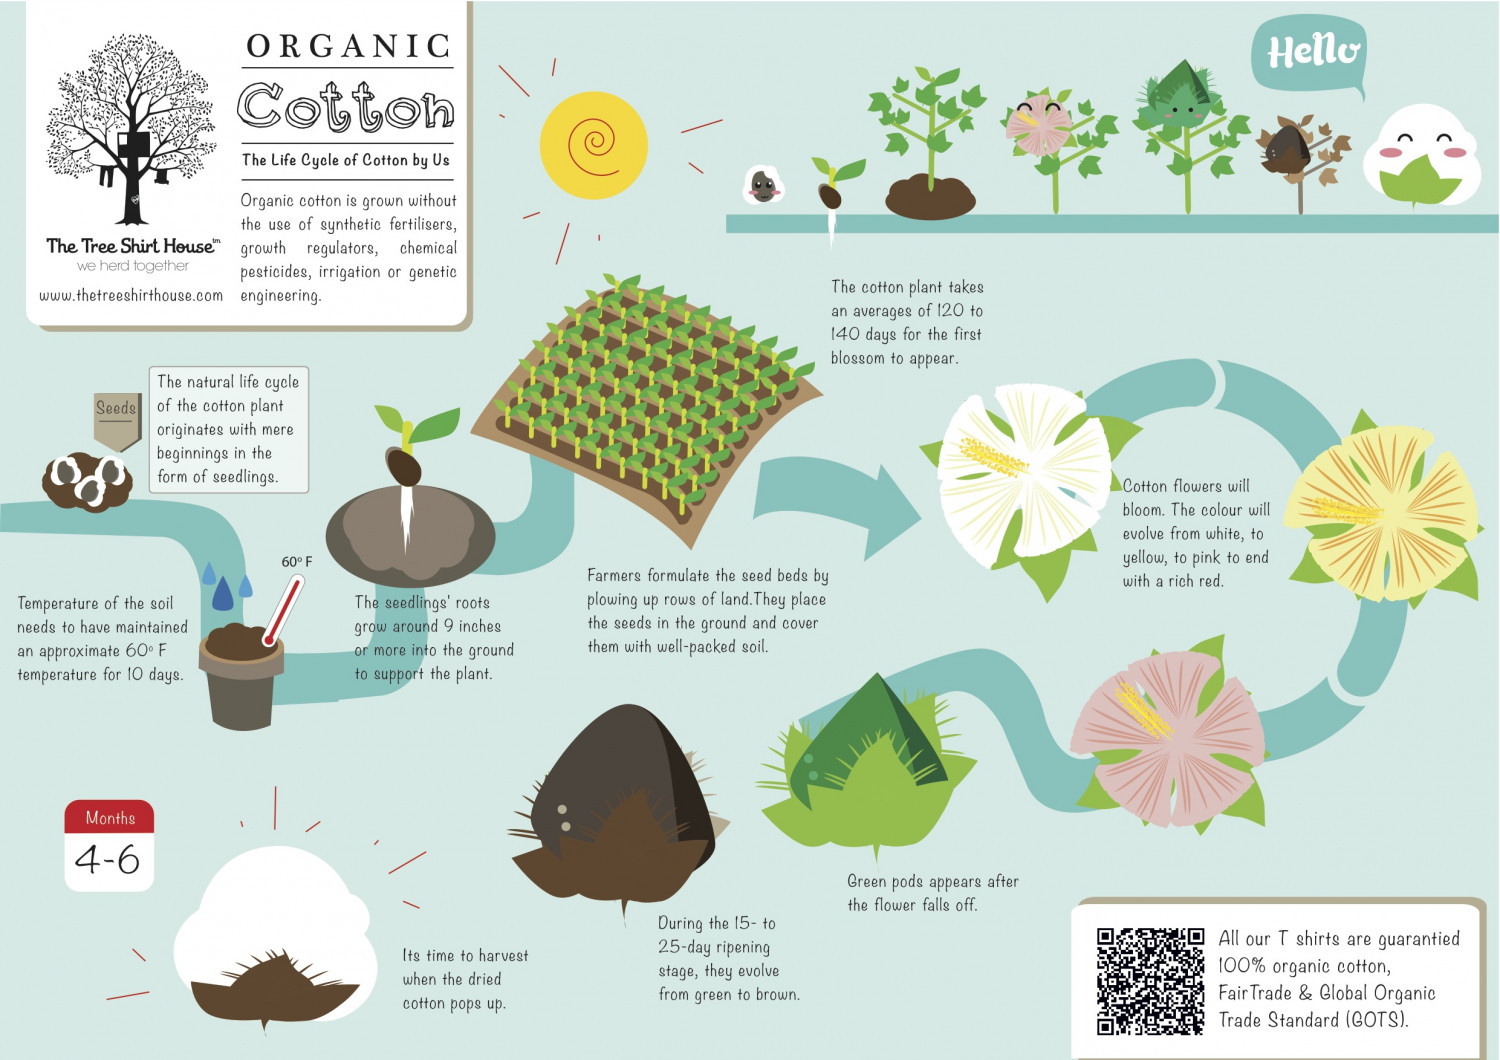 The Tsh S Organic Cotton S Lifecycle